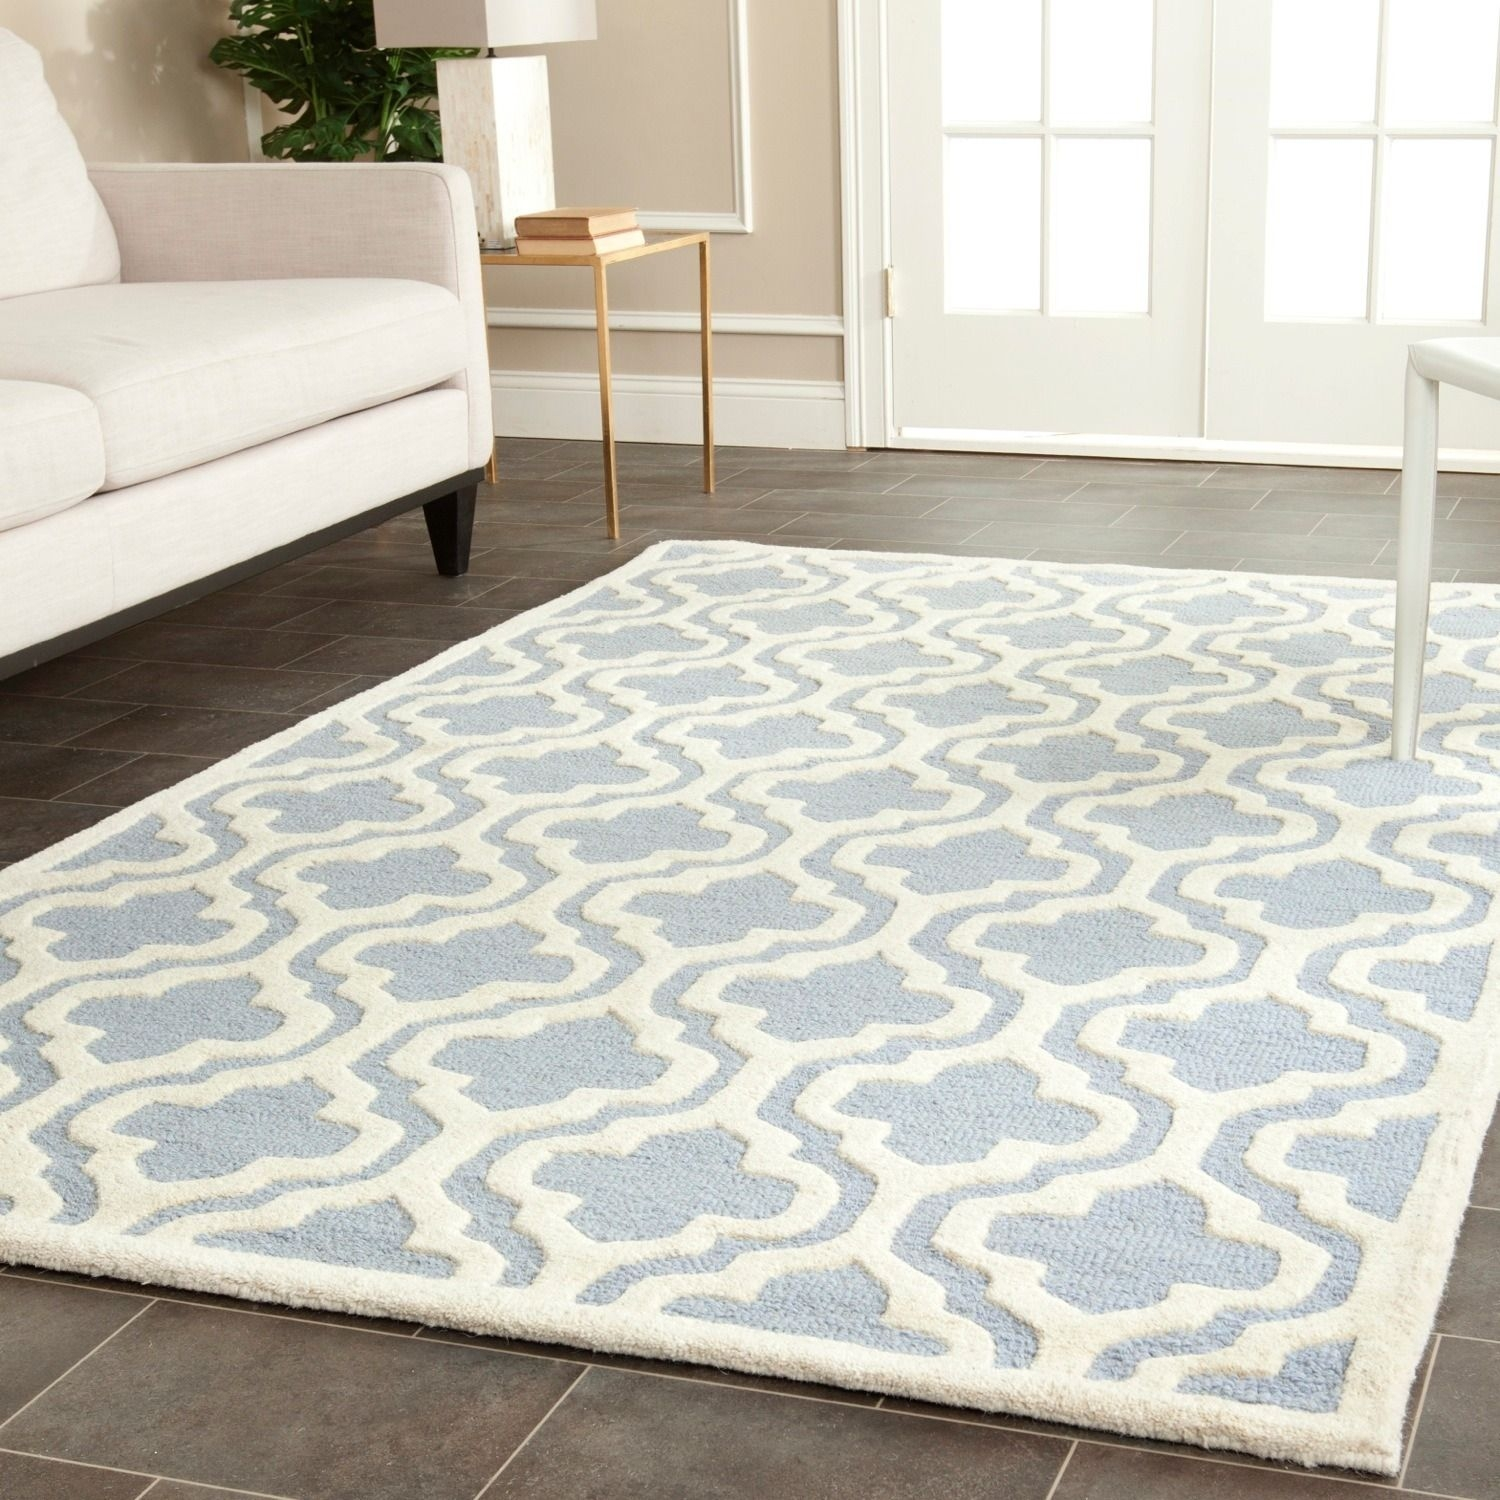 15 Ideas Of 10 14 Wool Area Rugs